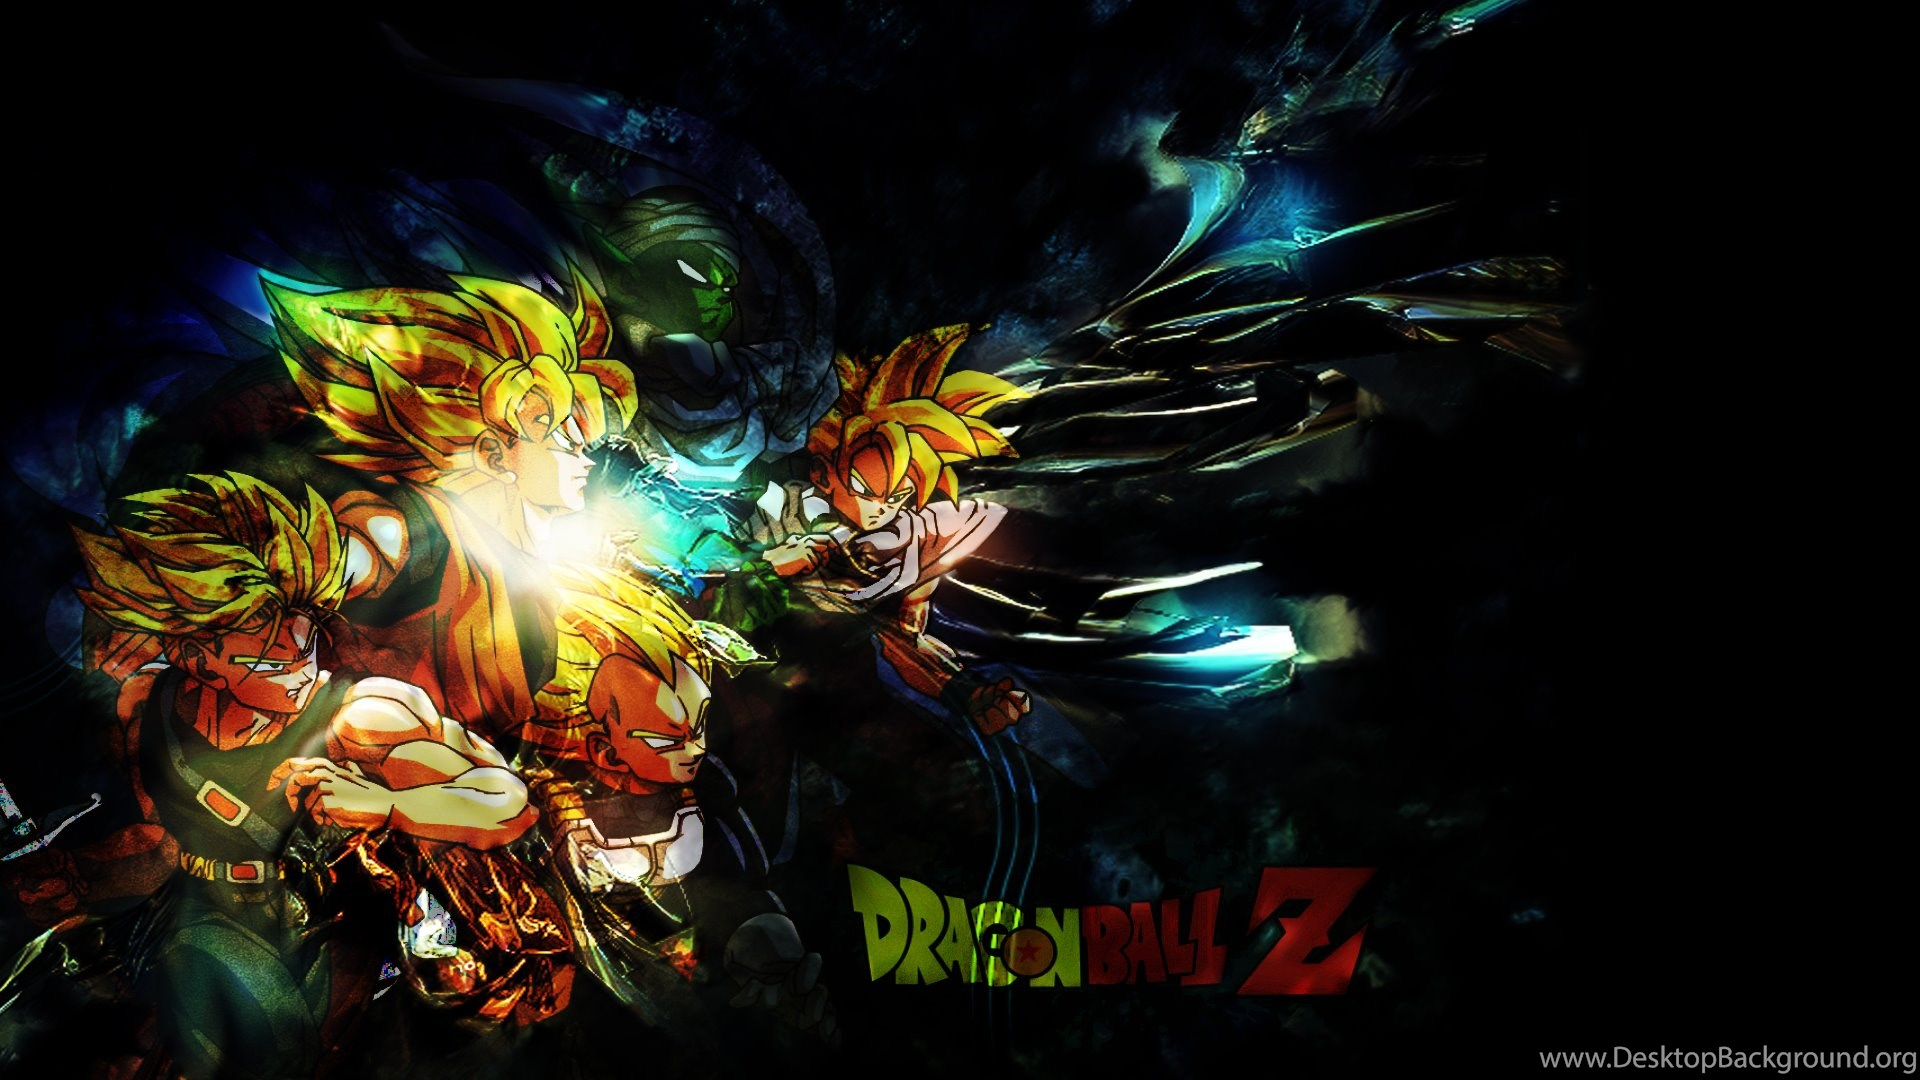 Dragon Ball Z Hd Wallpaper For Android: Best Anime Dragon Ball Z Full HD Wallpapers 9